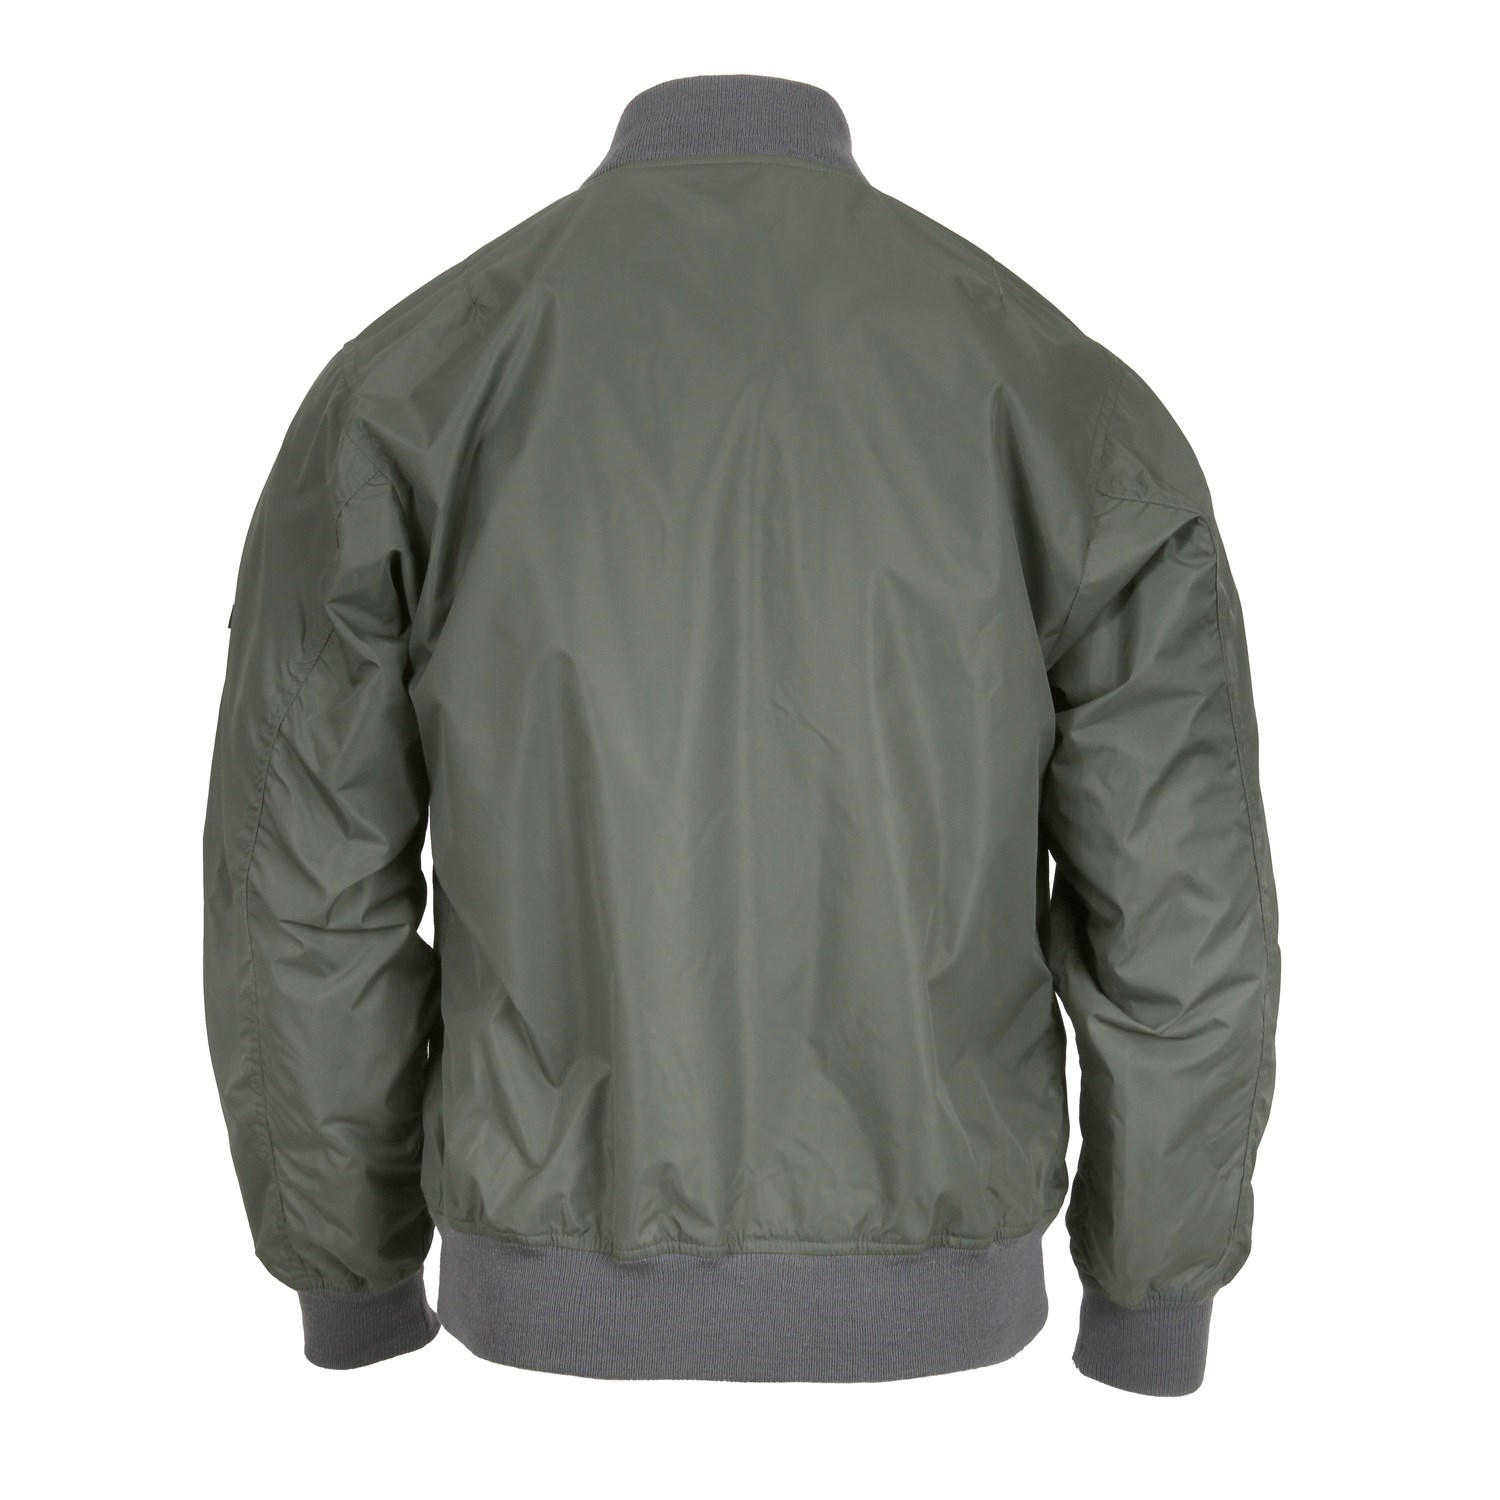 Jacket MA1 FLIGHT NAVY SAGE GREEN ROTHCO 6325 L-11